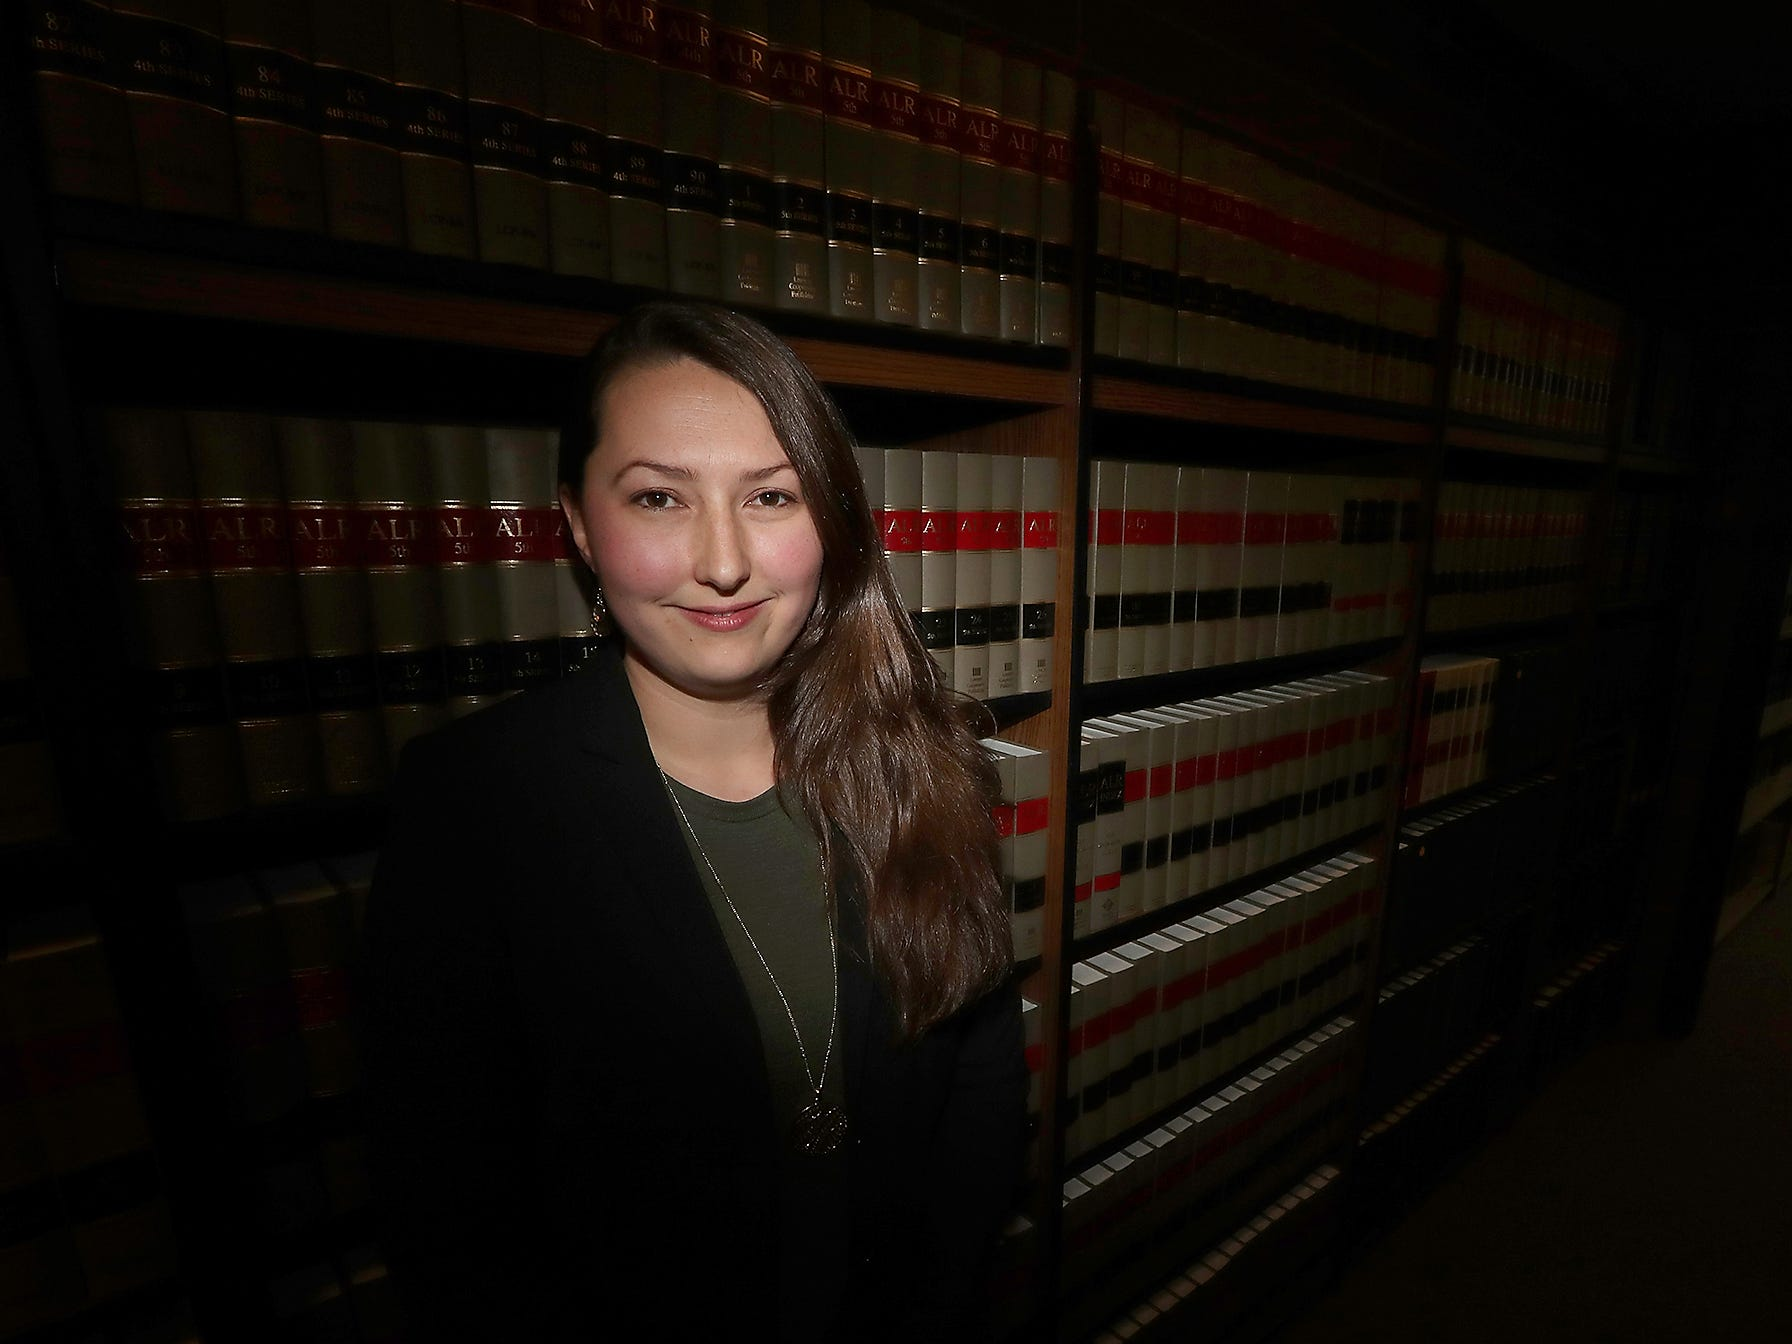 Kitsap County Public Defender Laura Schulman in the Law Library in the Kitsap County Courthouse in Port Orchard on Wednesday, February 13. 2019. Schulman will be a contestant on Jeopardy!.